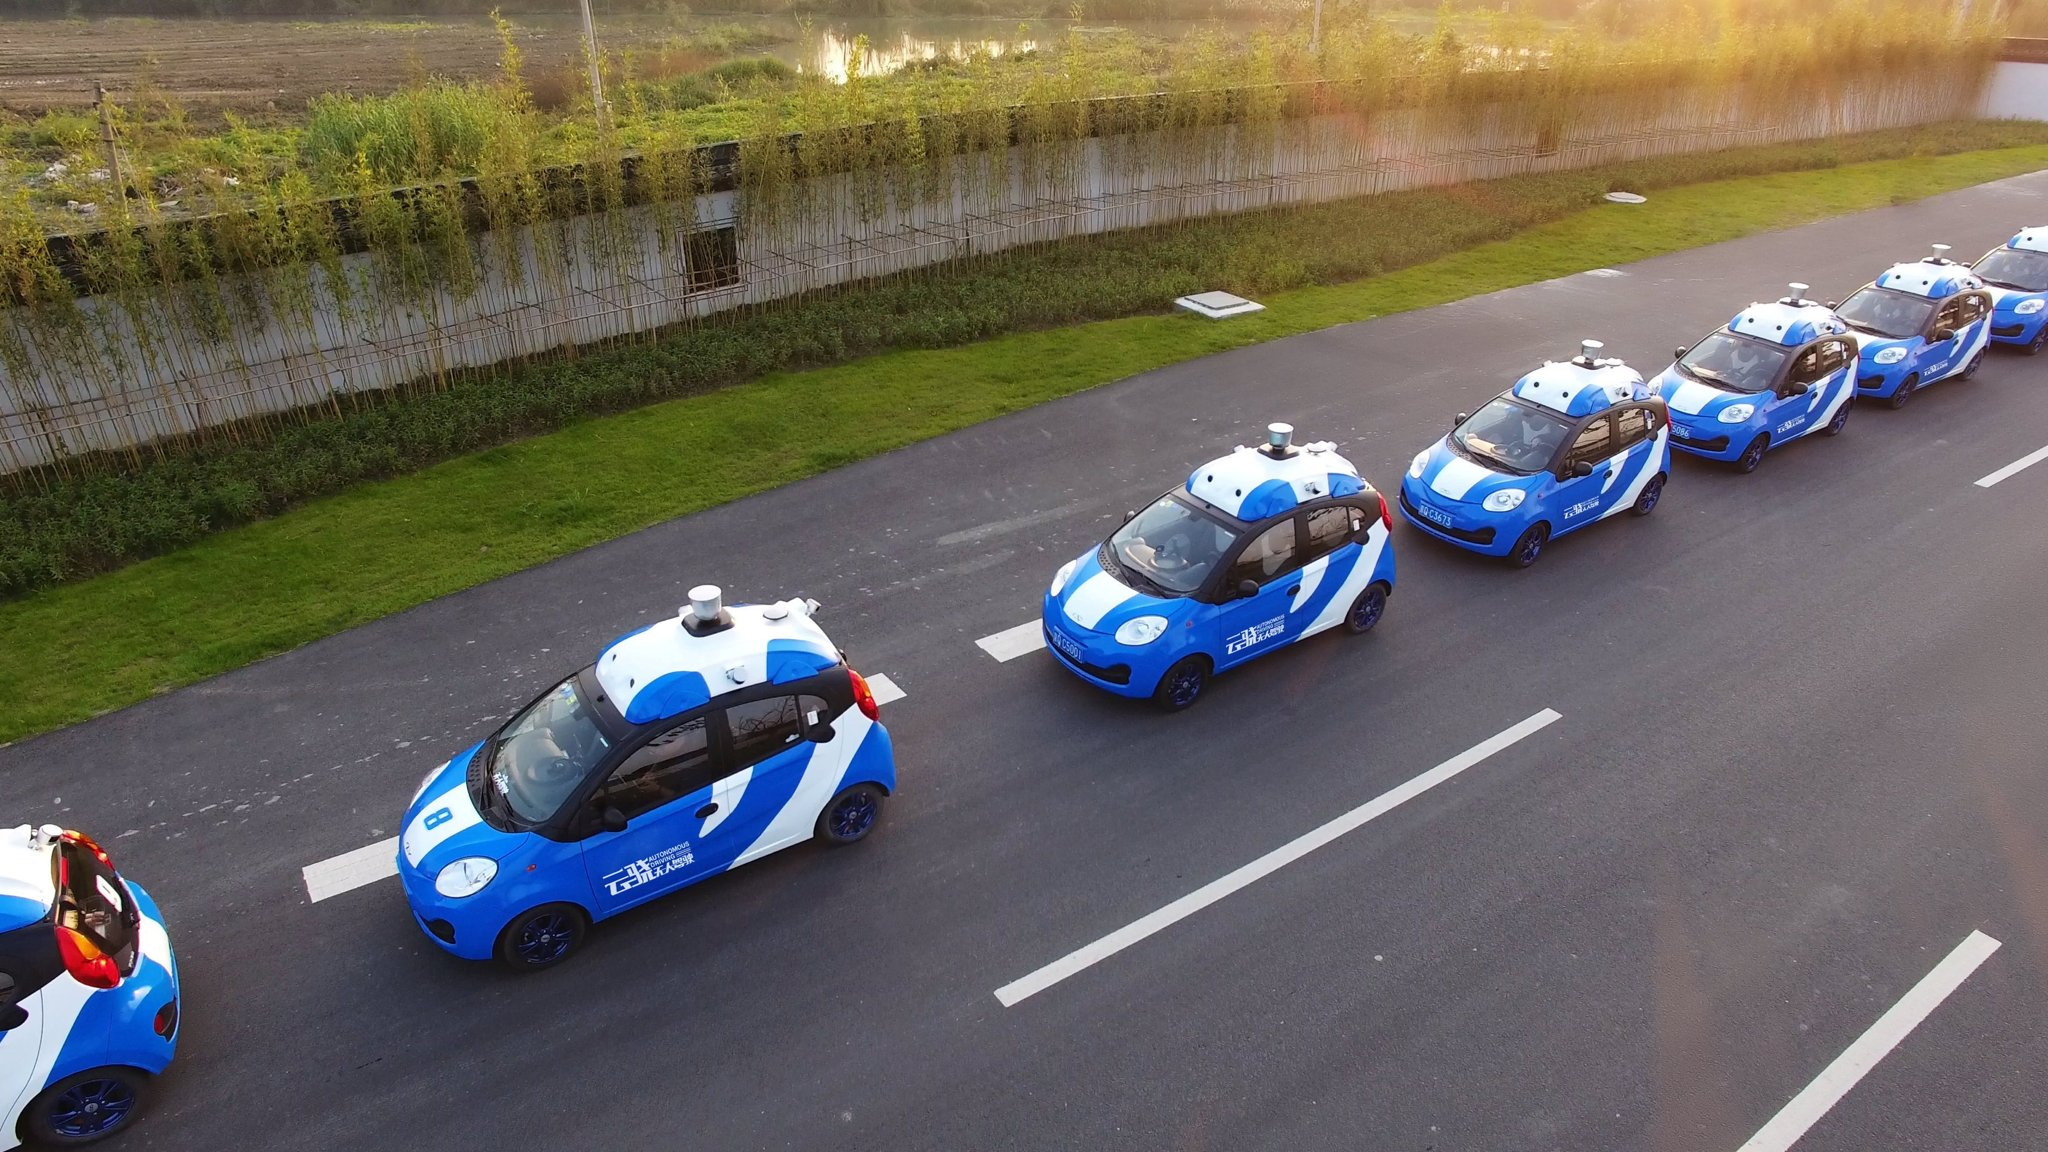 Self-driving cars raise fears over 'weaponisation'